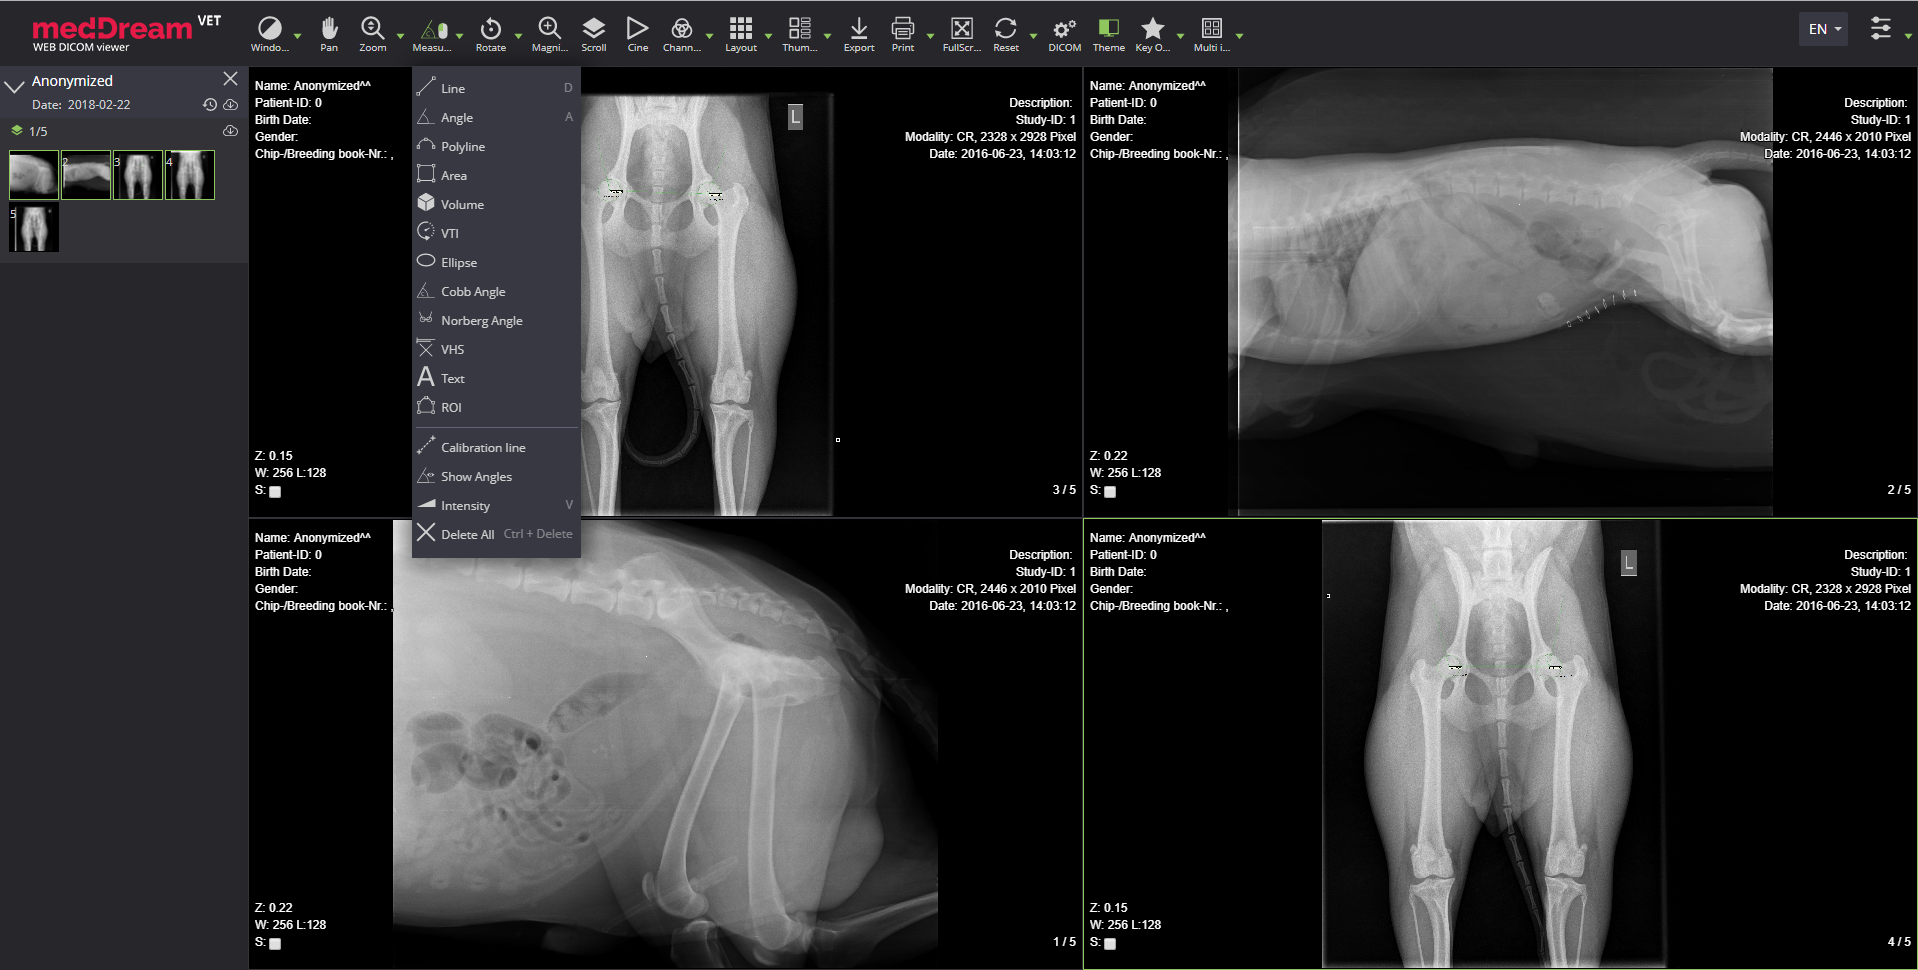 Meddream Vet Dicom Viewer Radiology Measure